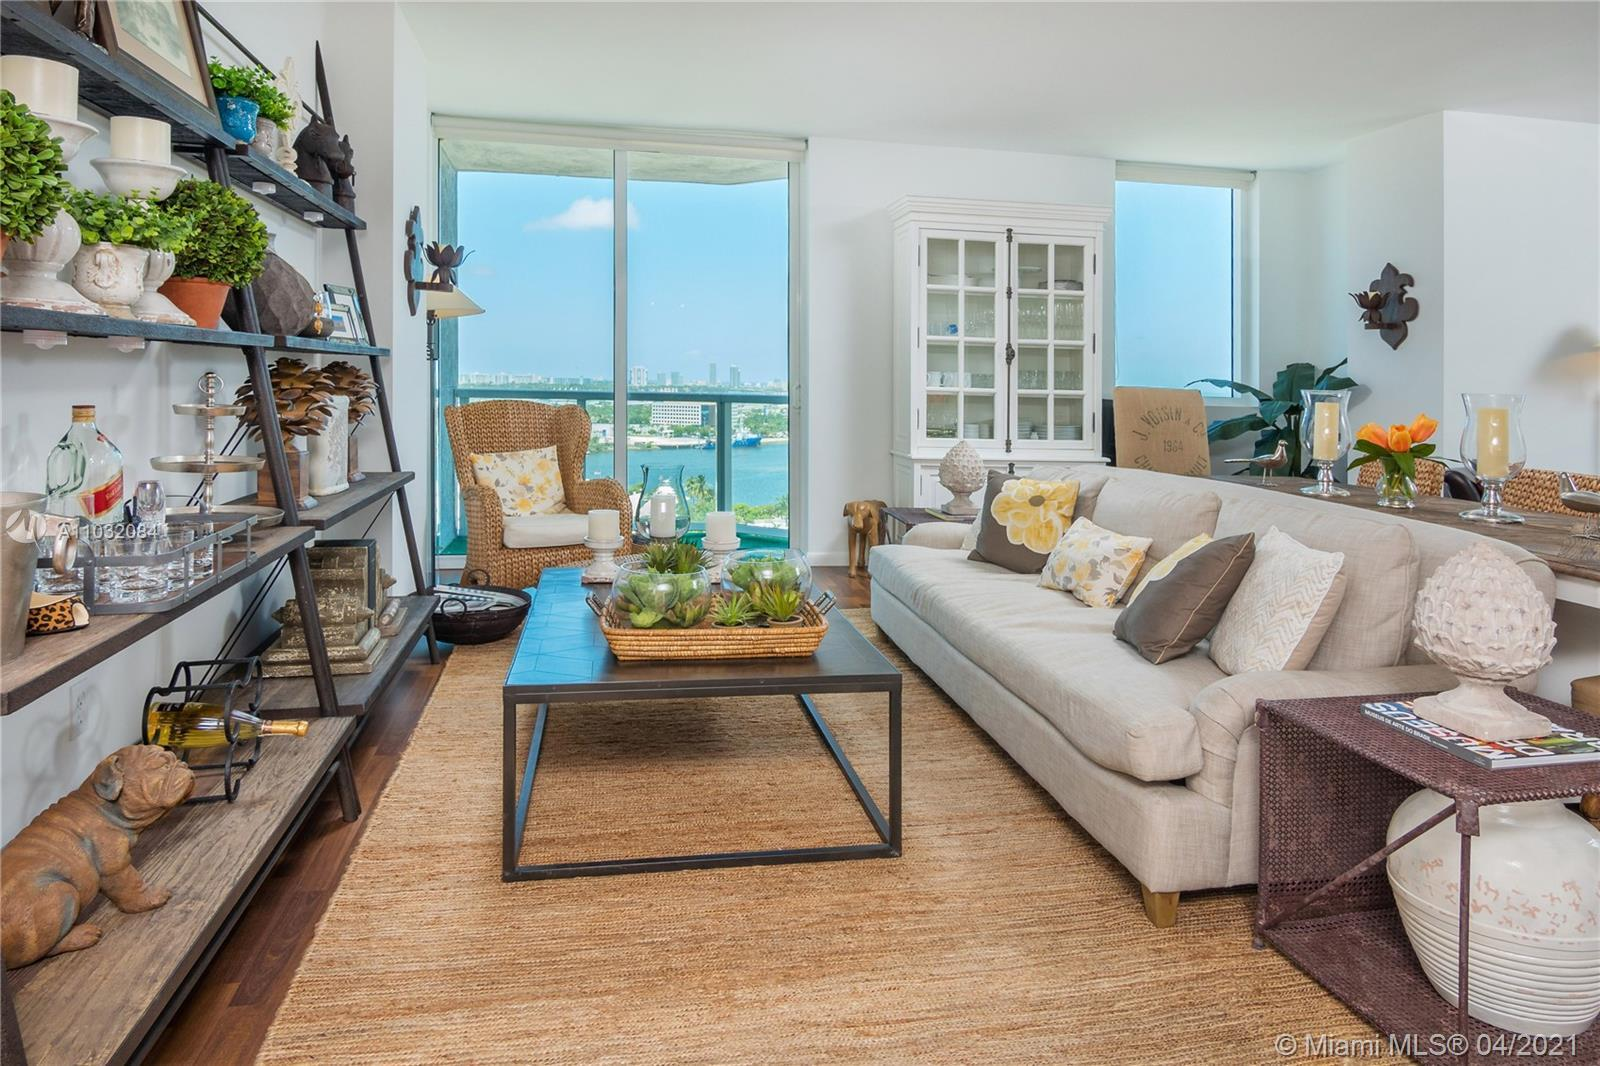 Stunning views of Biscayne Bay, Atlantic Ocean, Key Biscayne. Across the street from the Shops at Bi